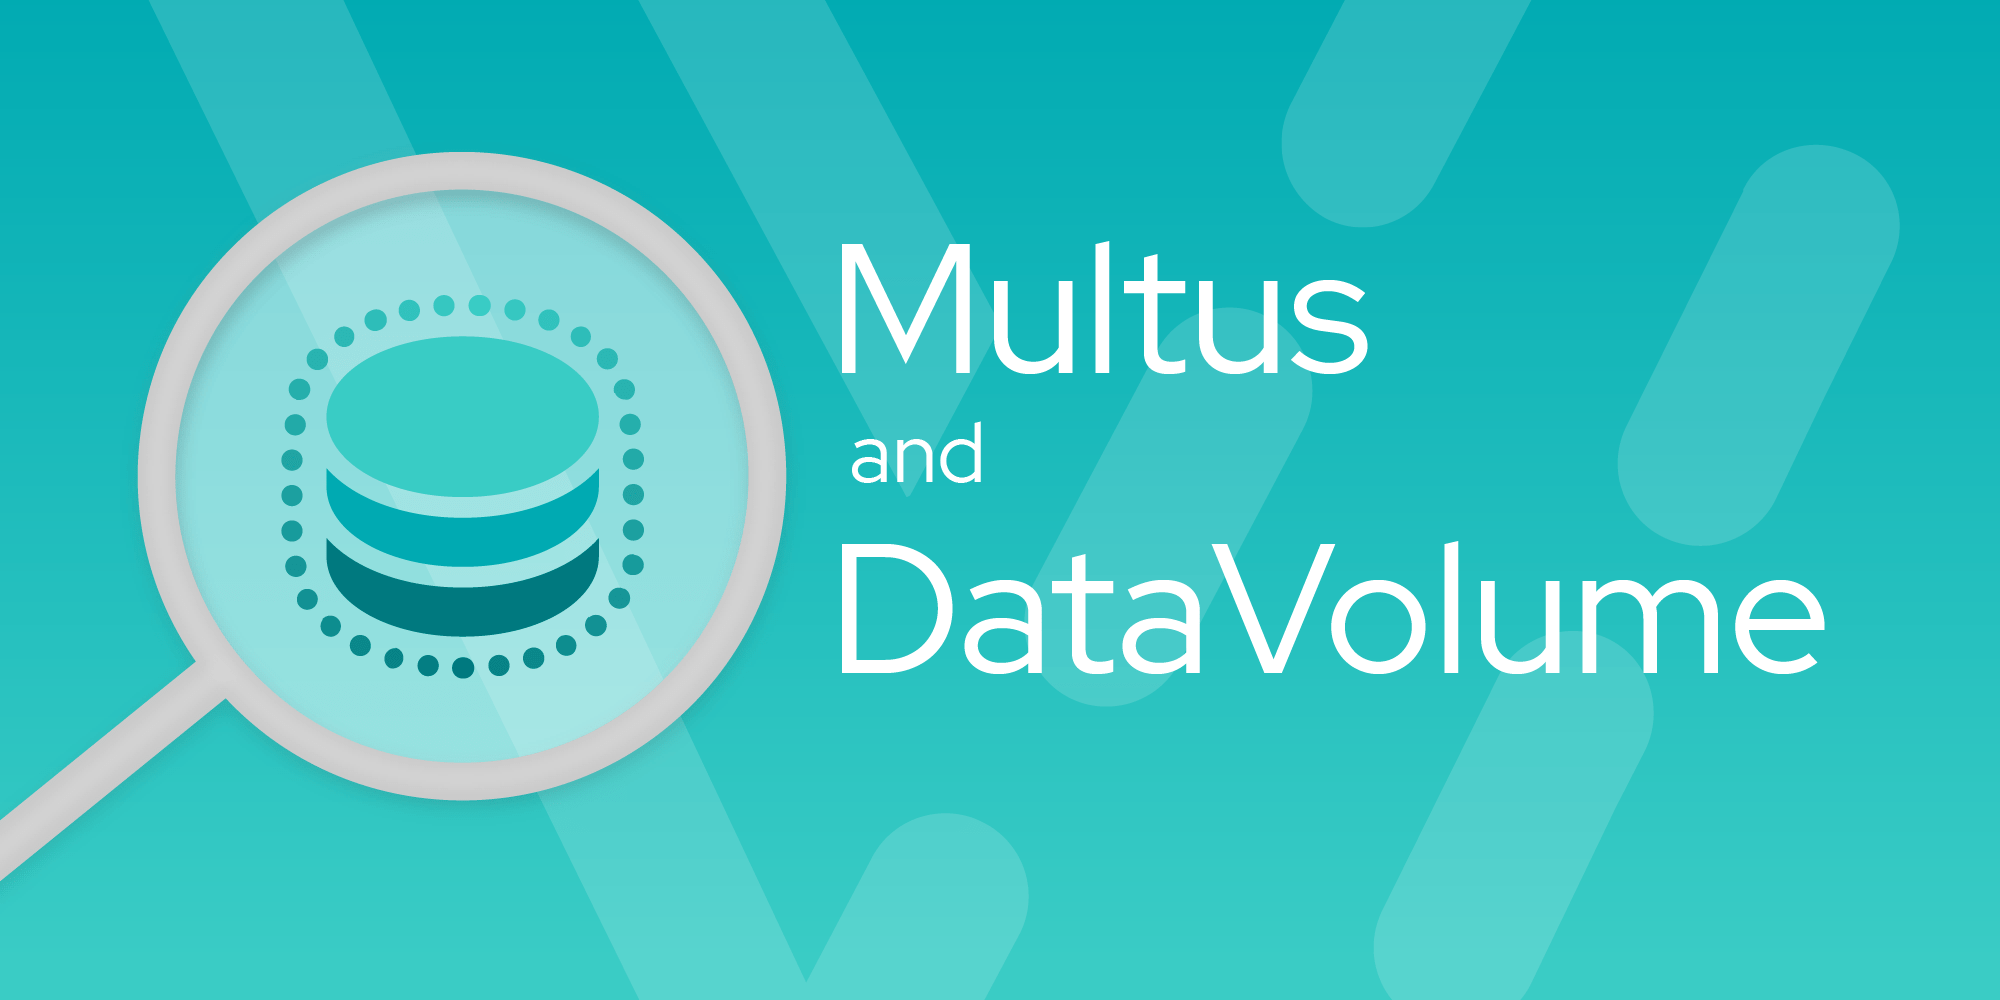 Using Multus and DataVolume in KubeVirt